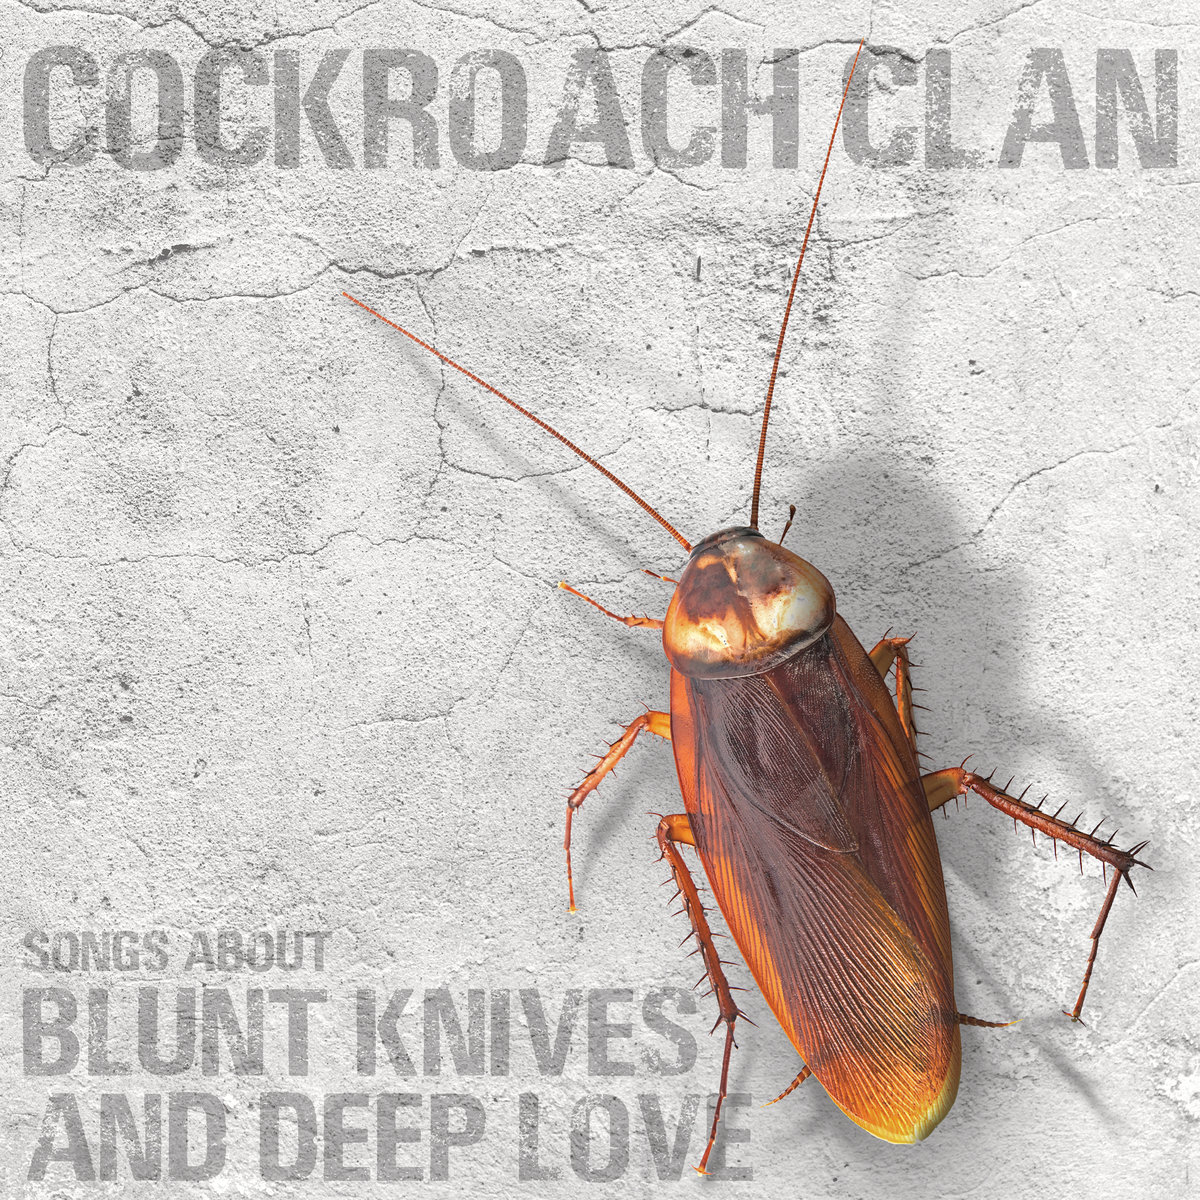 Cockroach Clan - Songs About Blunt Knives and Deep Love [LP]